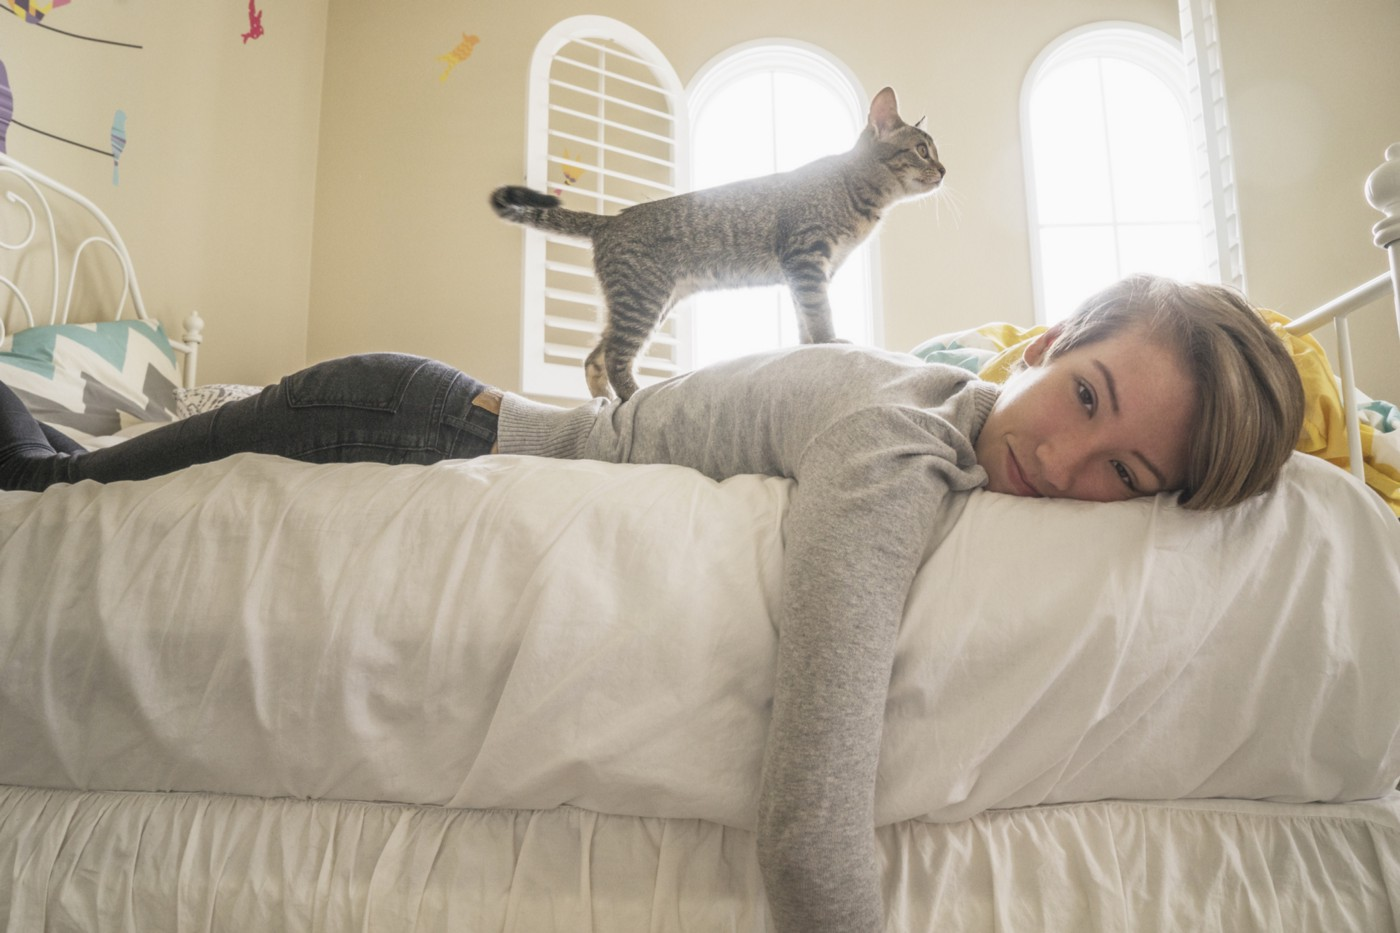 A young woman lies languidly in bed on her stomach while a cute cat stands on her back.